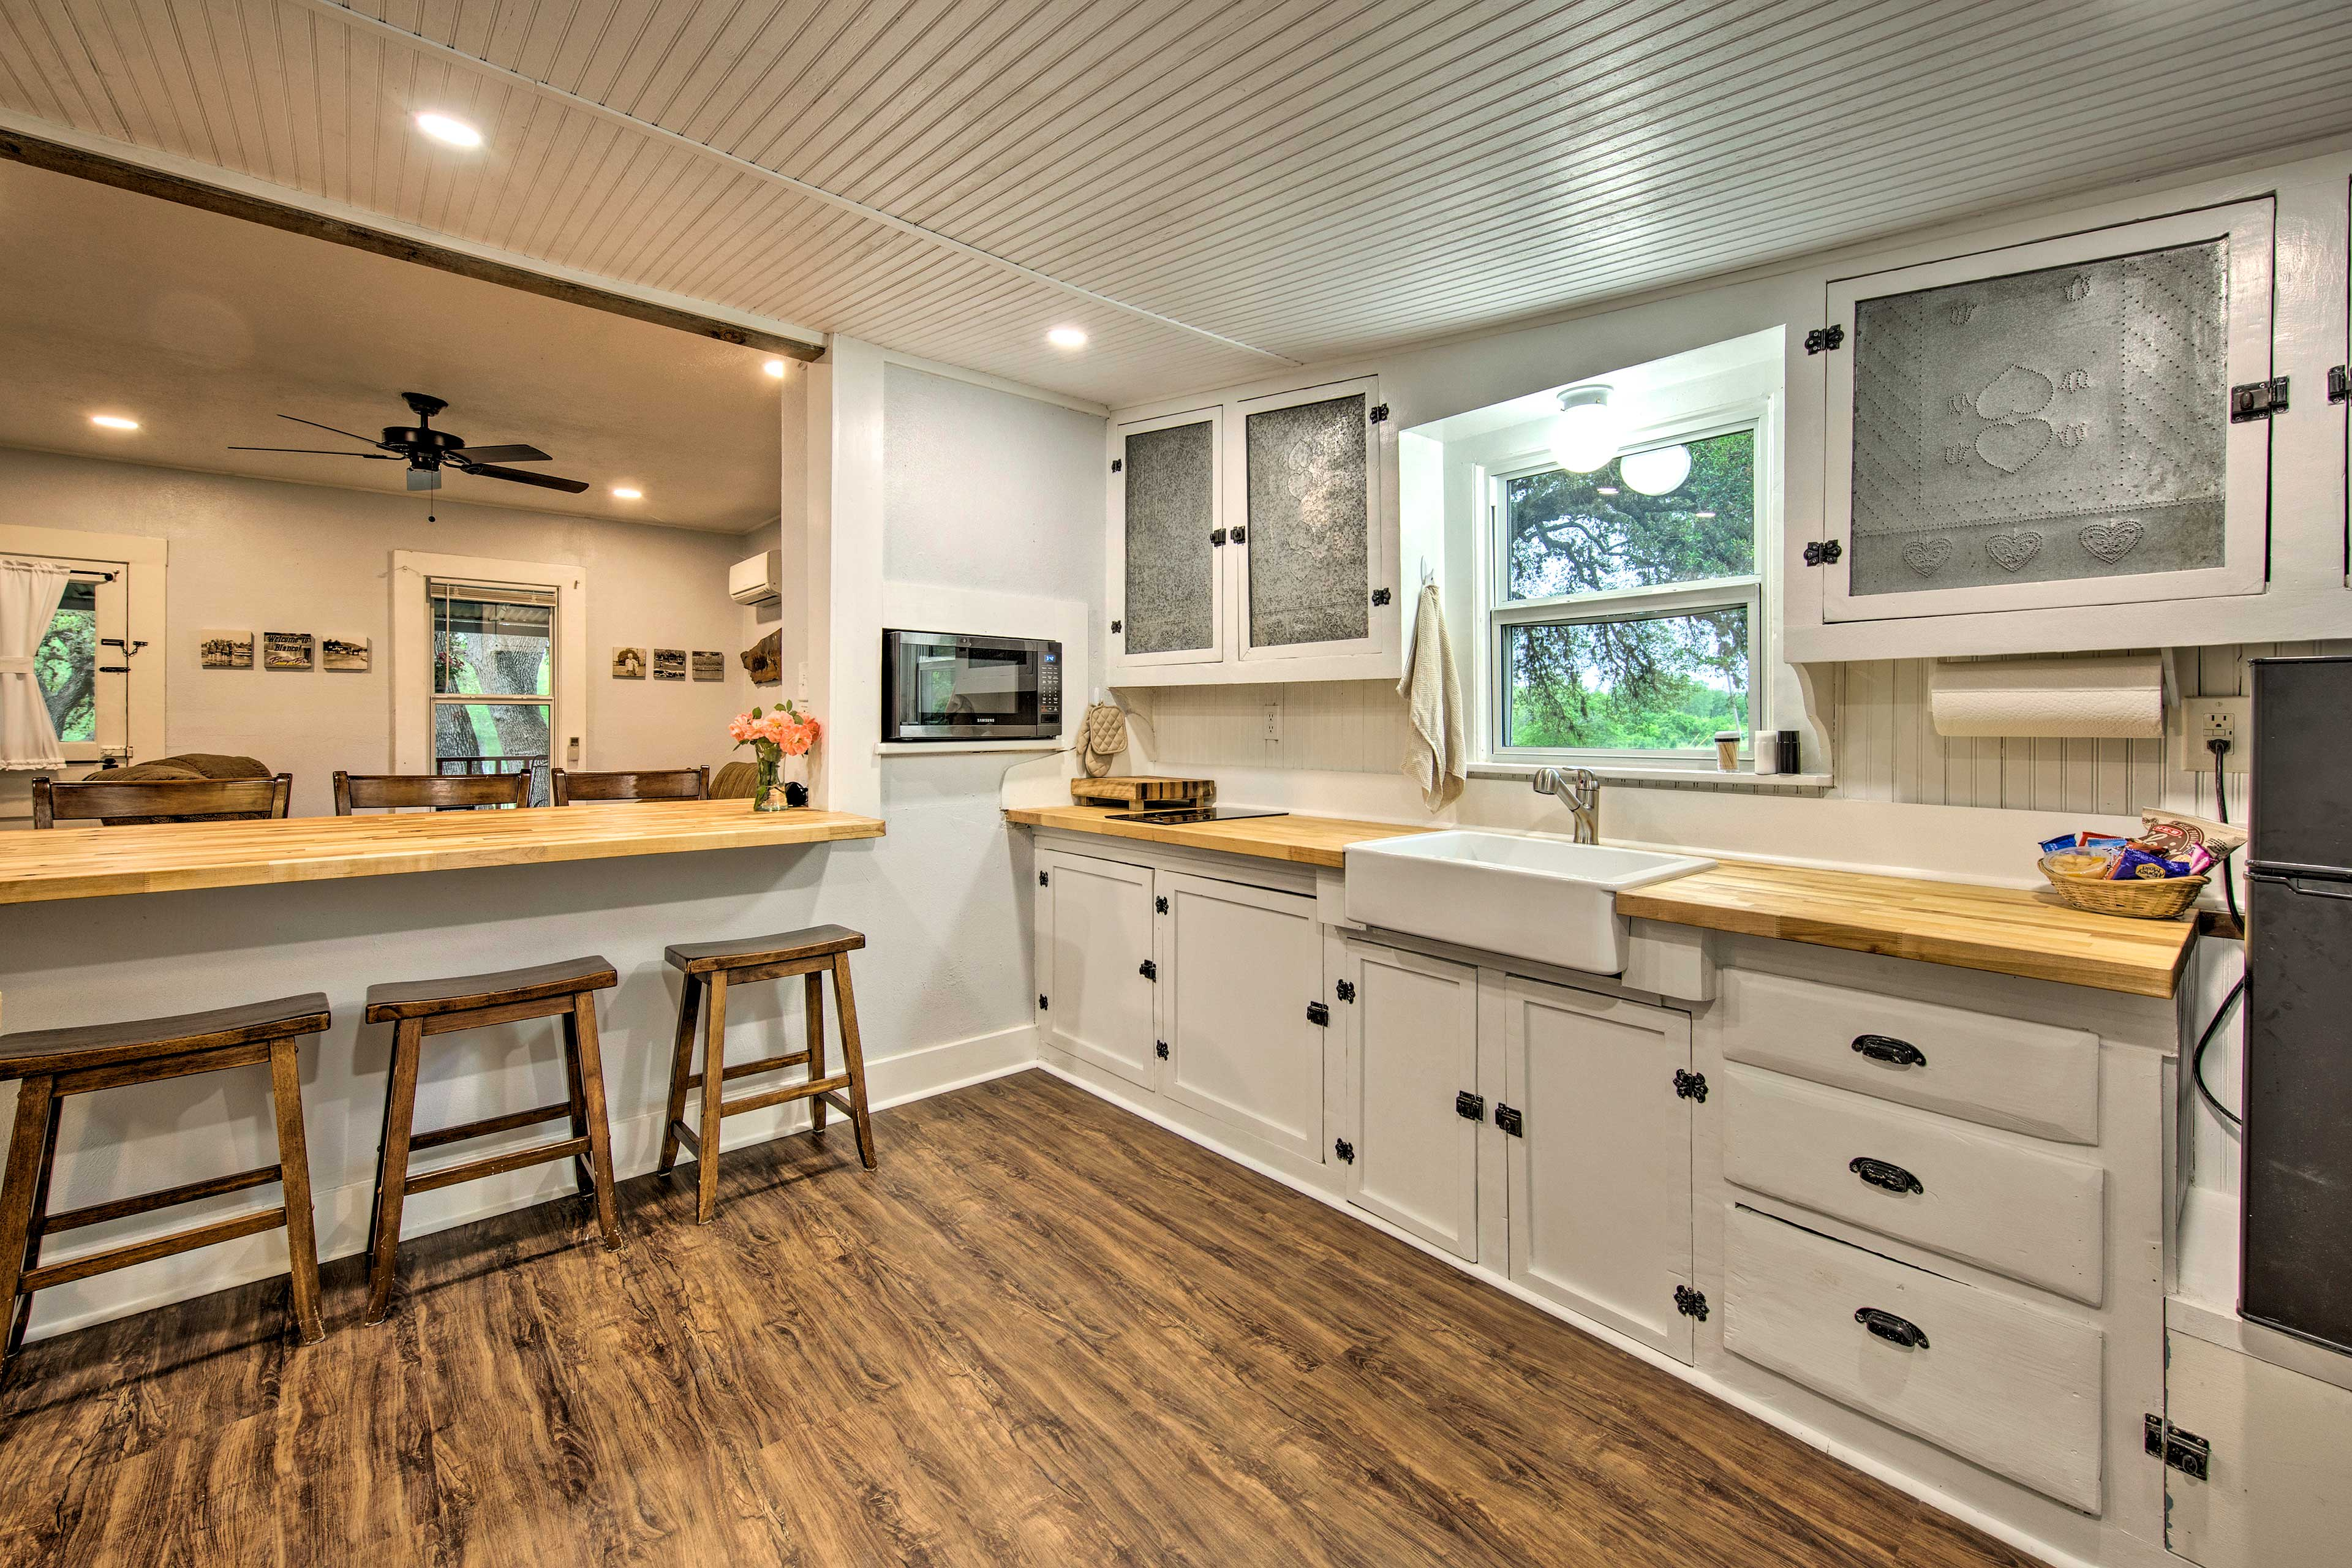 The kitchen comes fully equipped to handle all of your culinary needs.